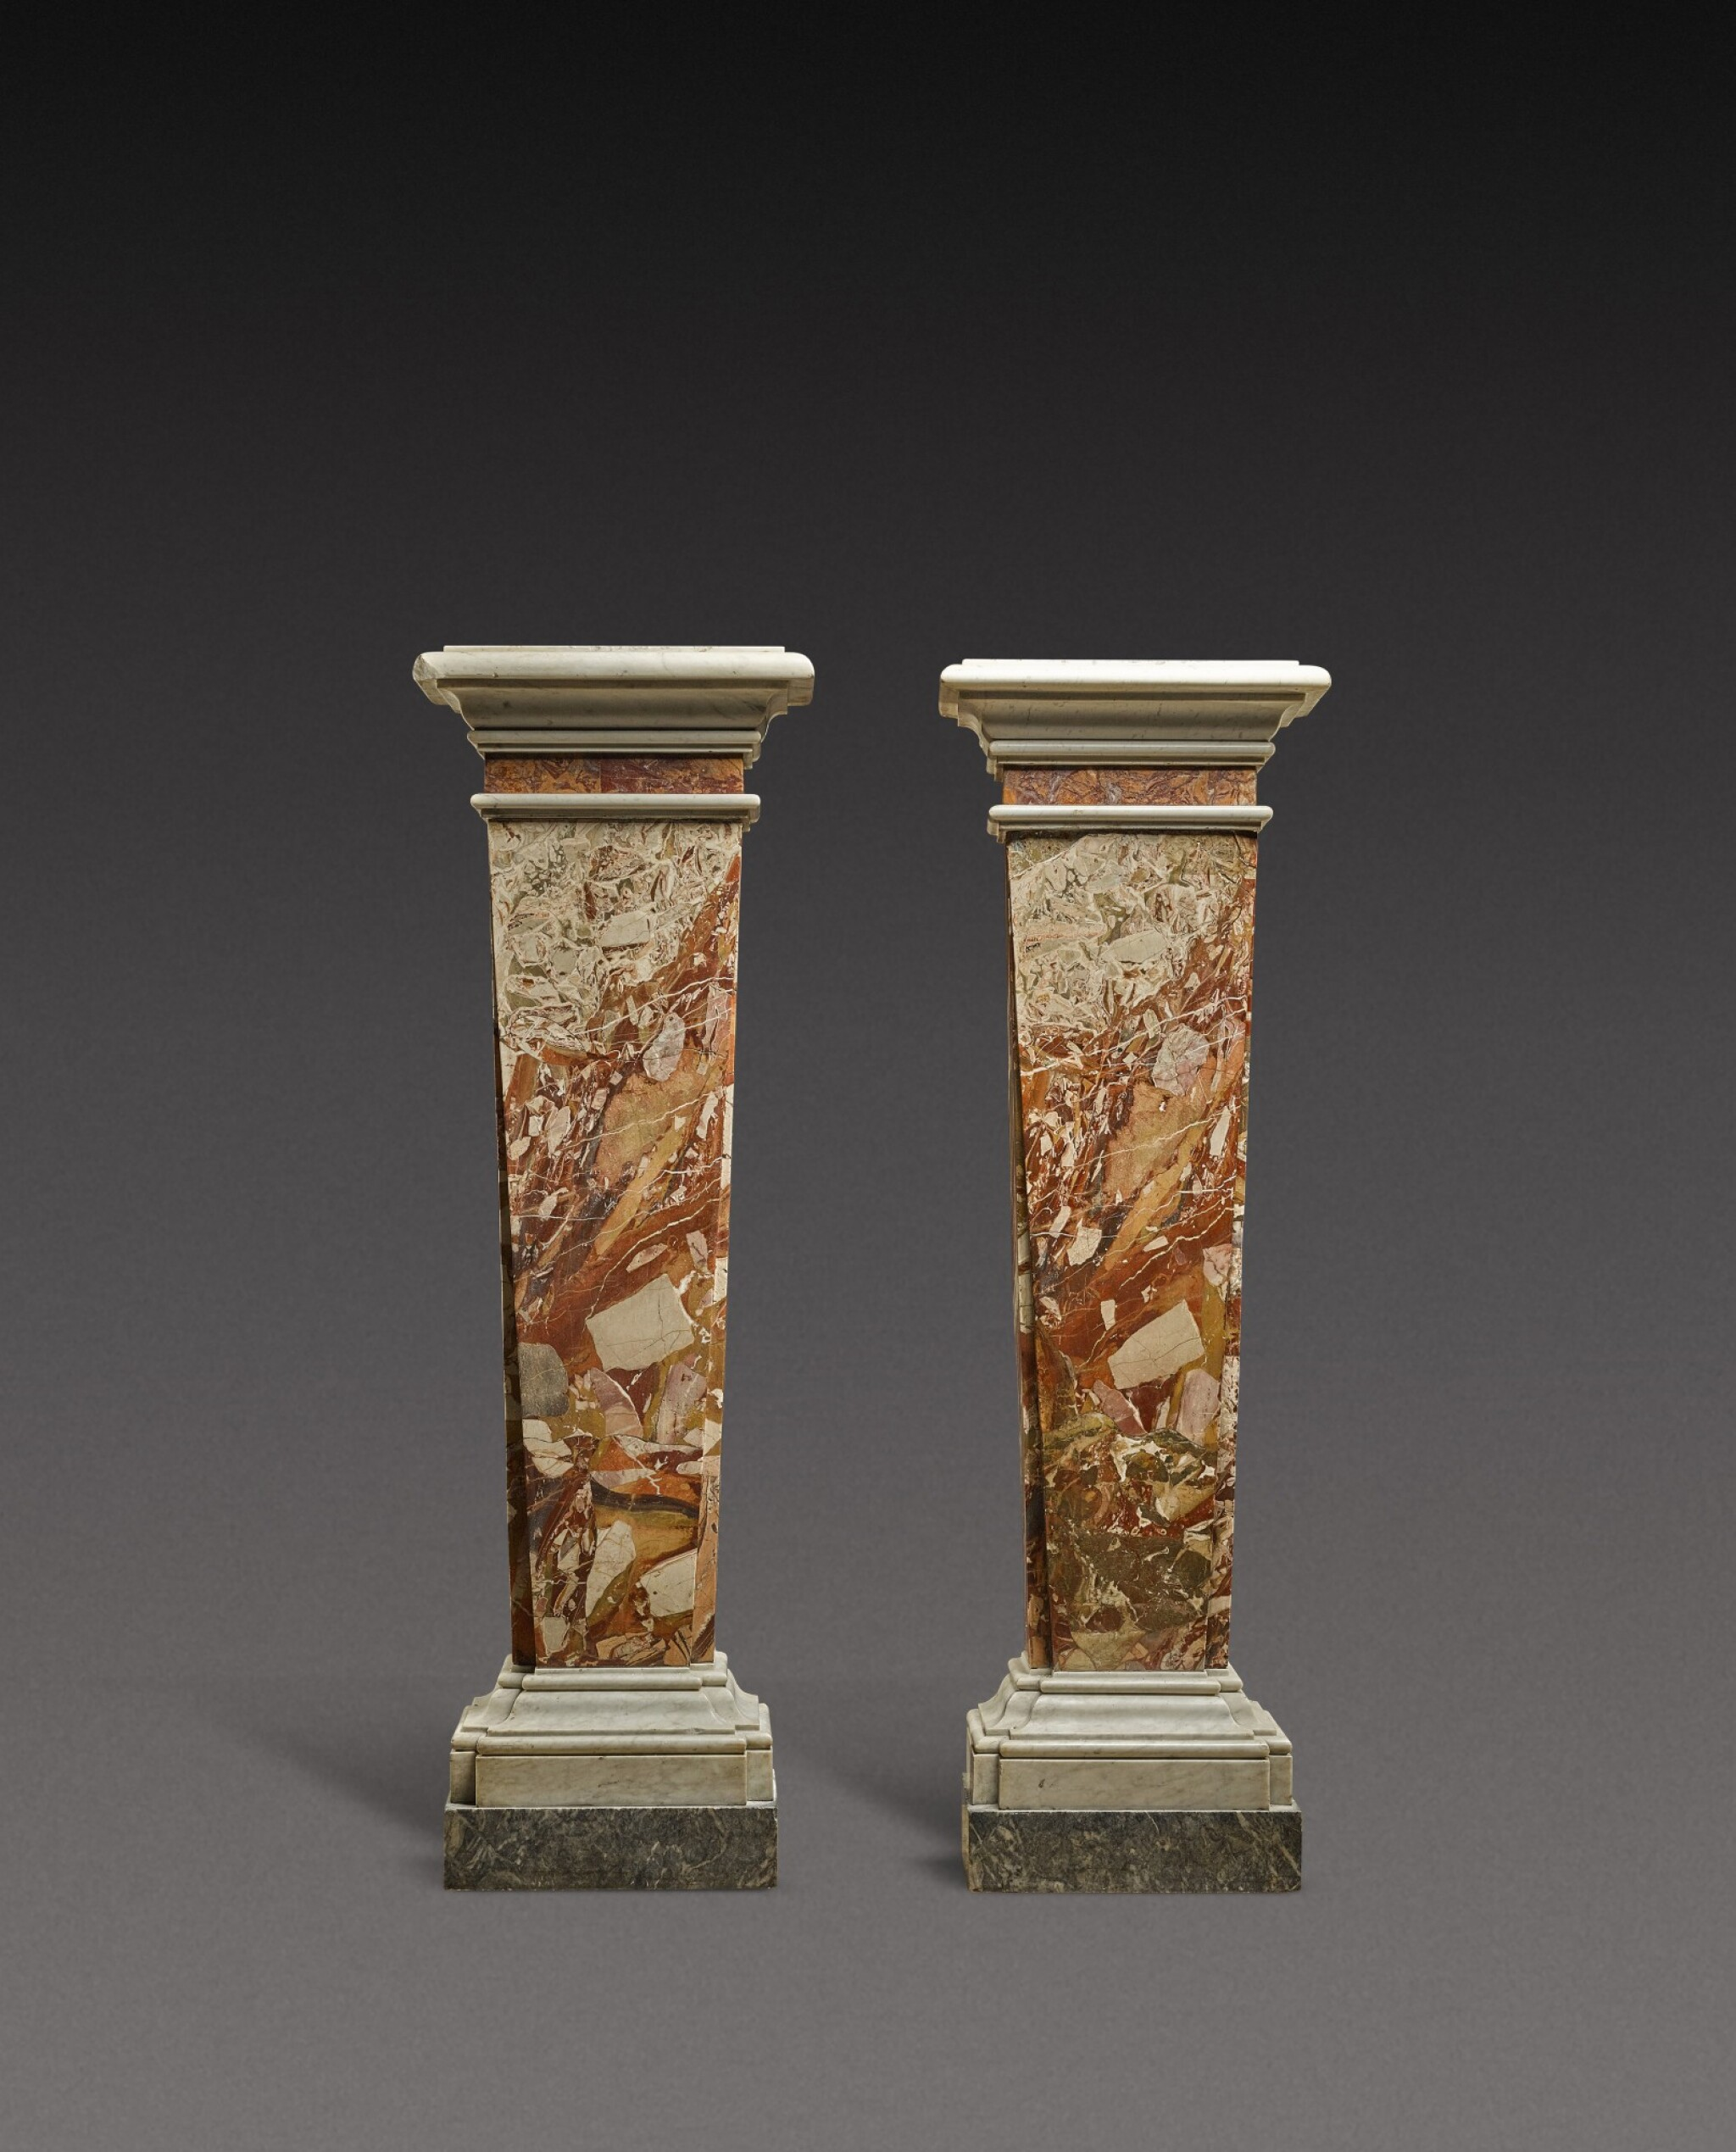 View 1 of Lot 141. Italian, Rome or Naples, 18th century | Pair of Pilaster Columns.